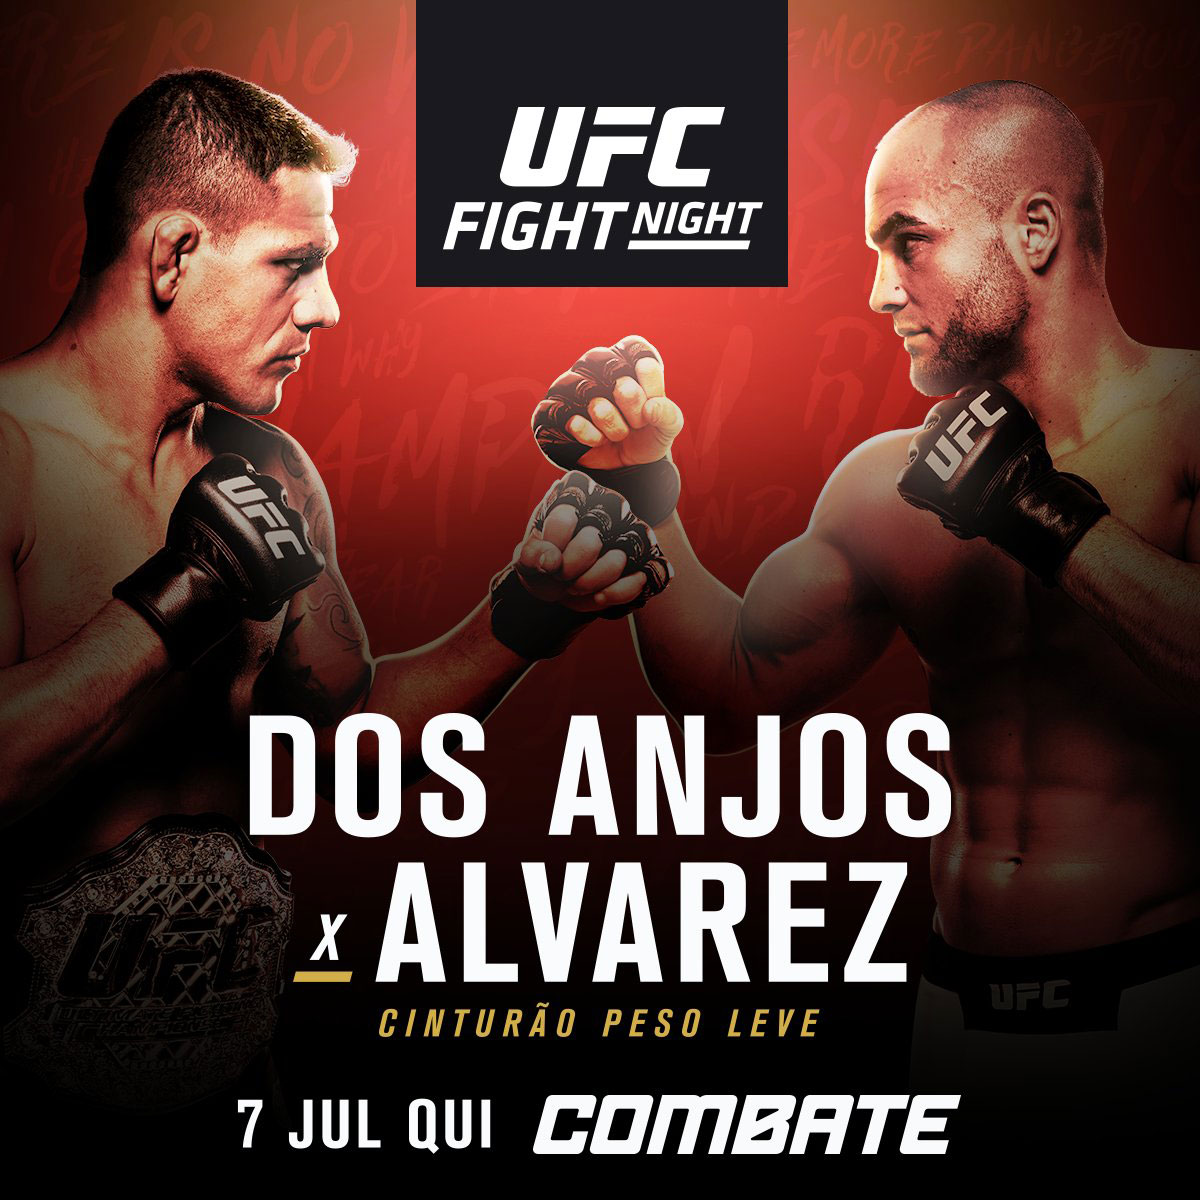 Poster/affiche UFC Fight Night 90